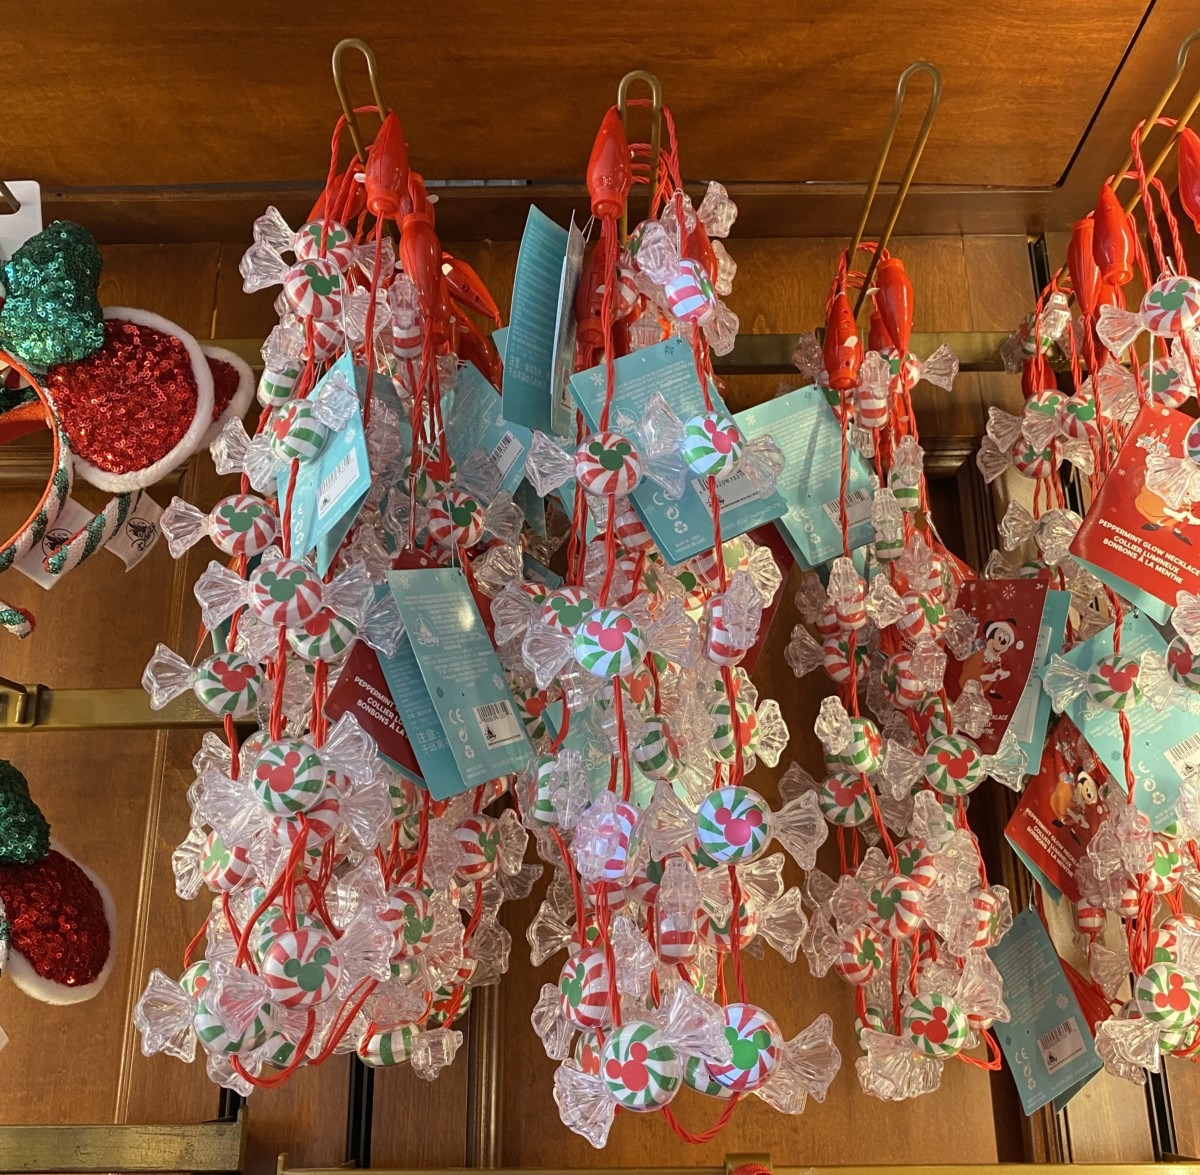 New Holiday Merchandise at Walt Disney World! 4